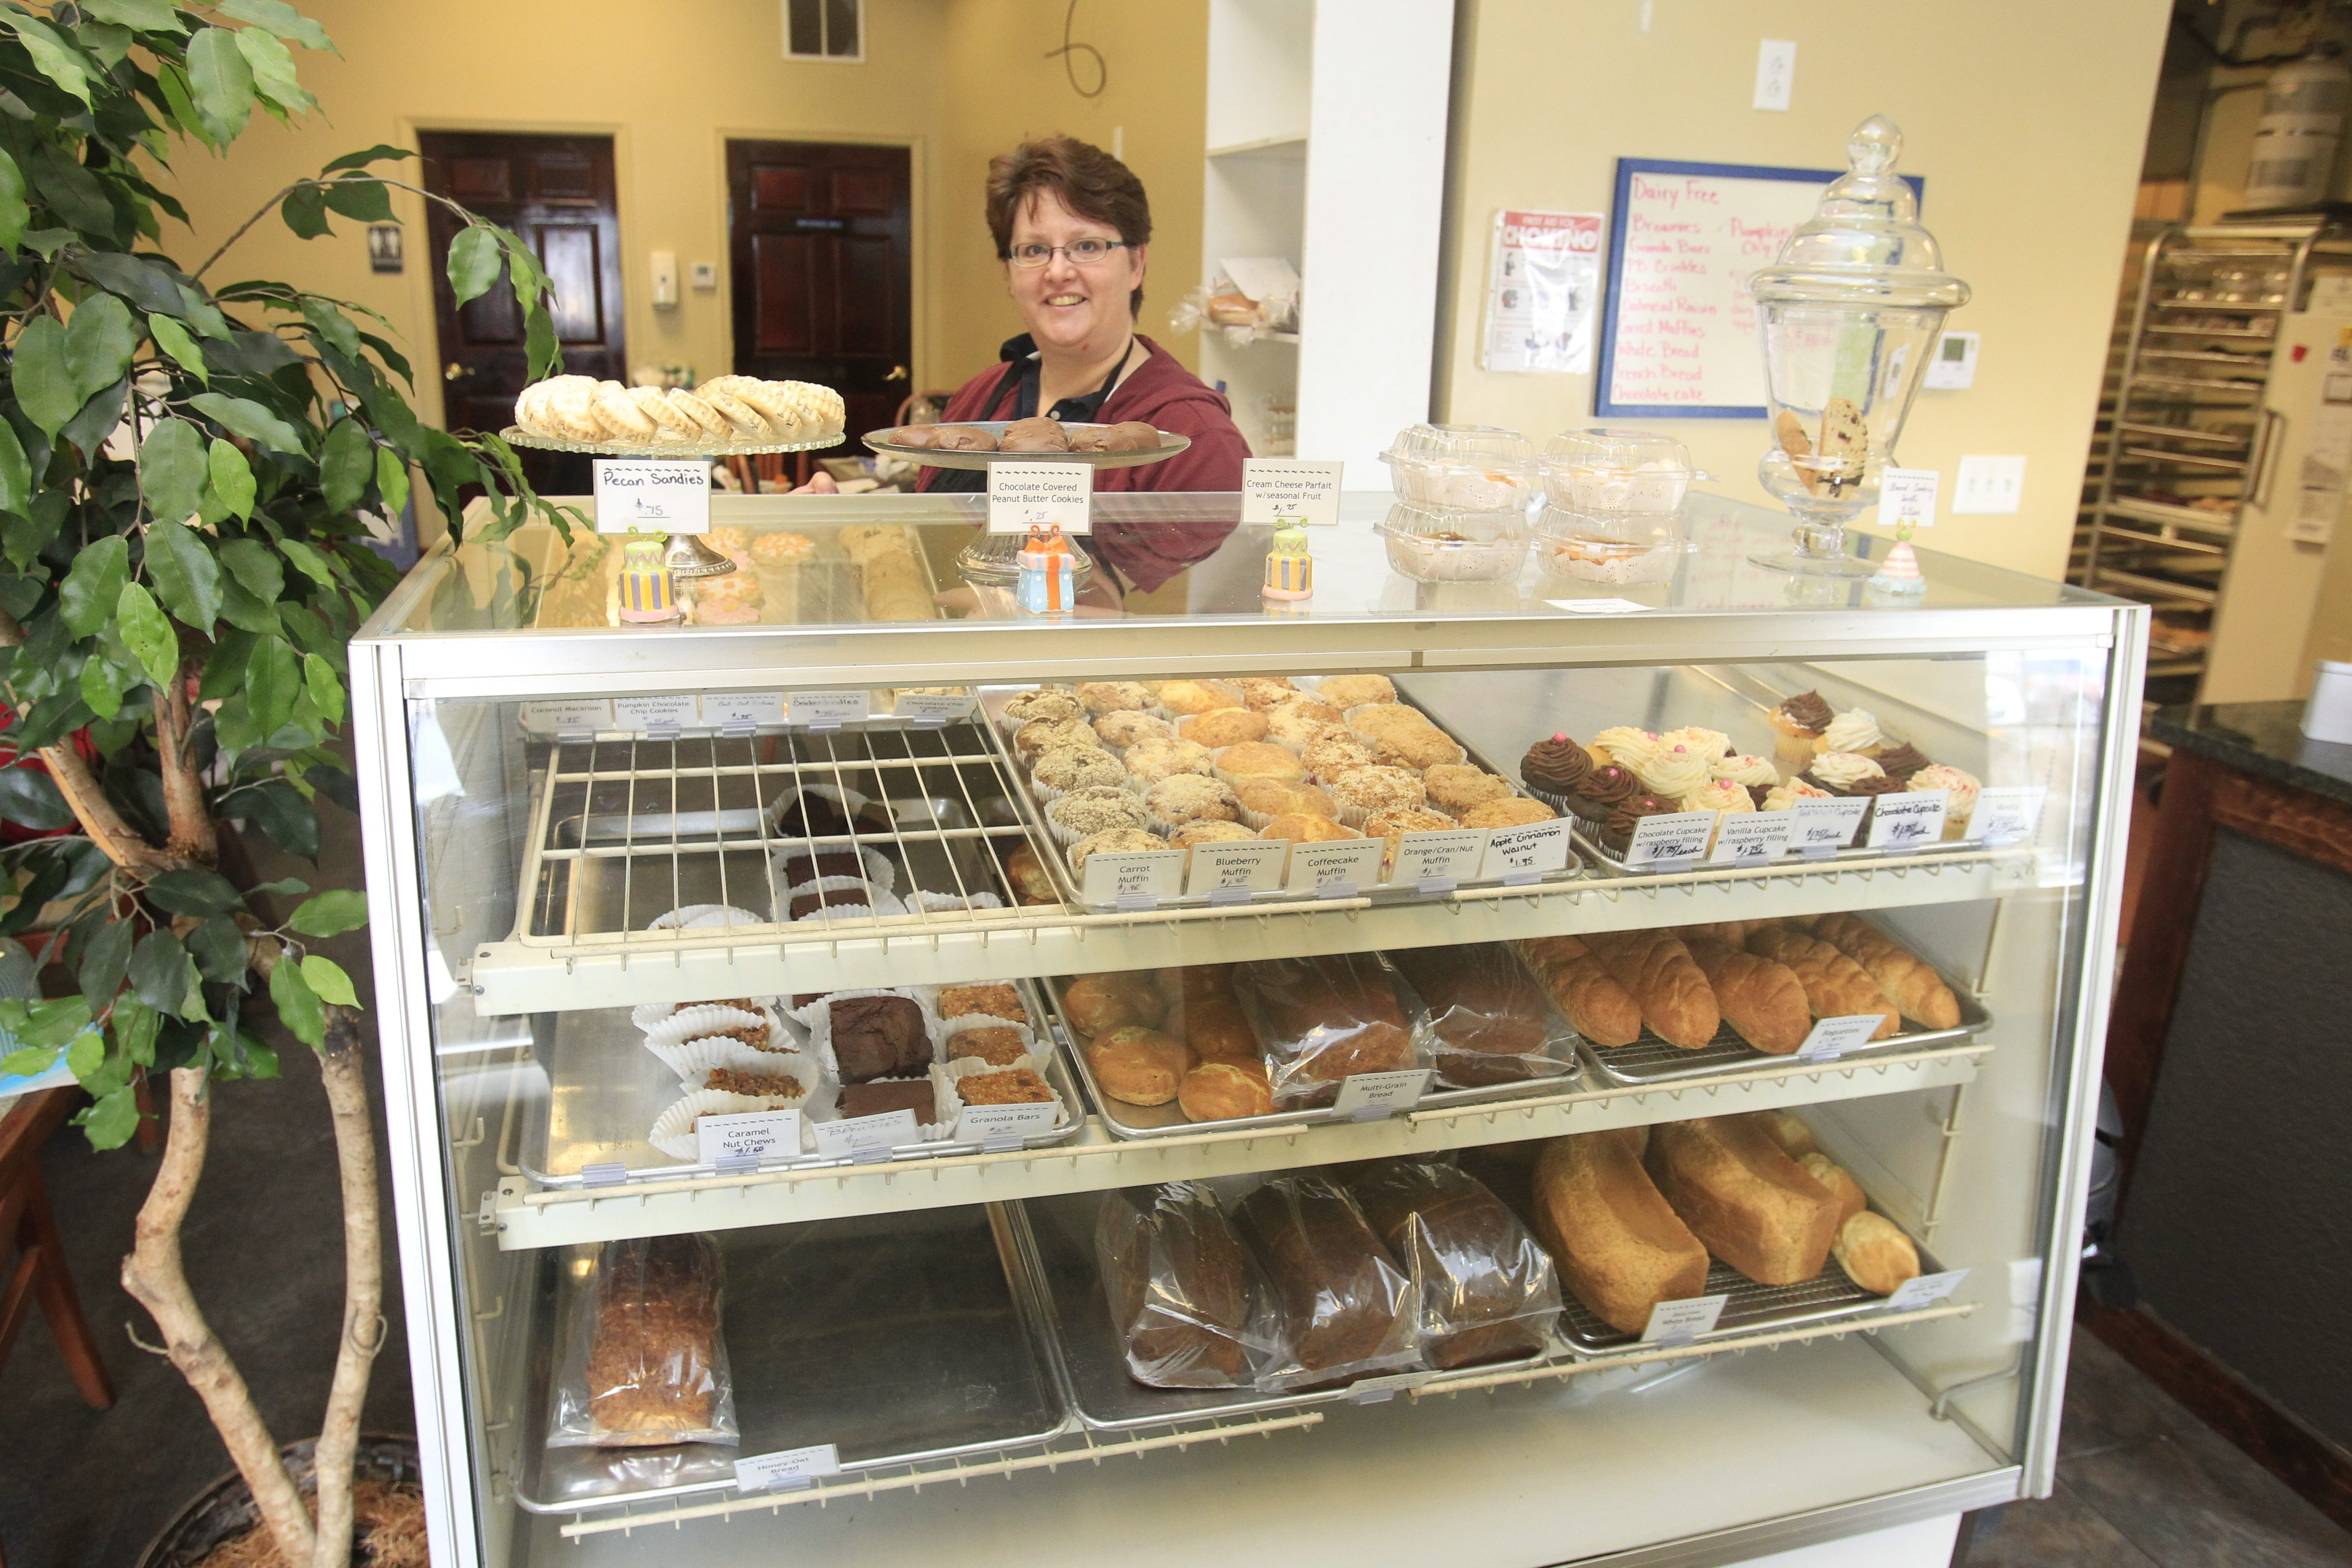 Lisa Jermyn stands behind a well-stocked display case in her specialty bakery, A Better Way. Jermyn quit her job as a teacher to open A Better Way, which sells gluten-free breads and baked goods.